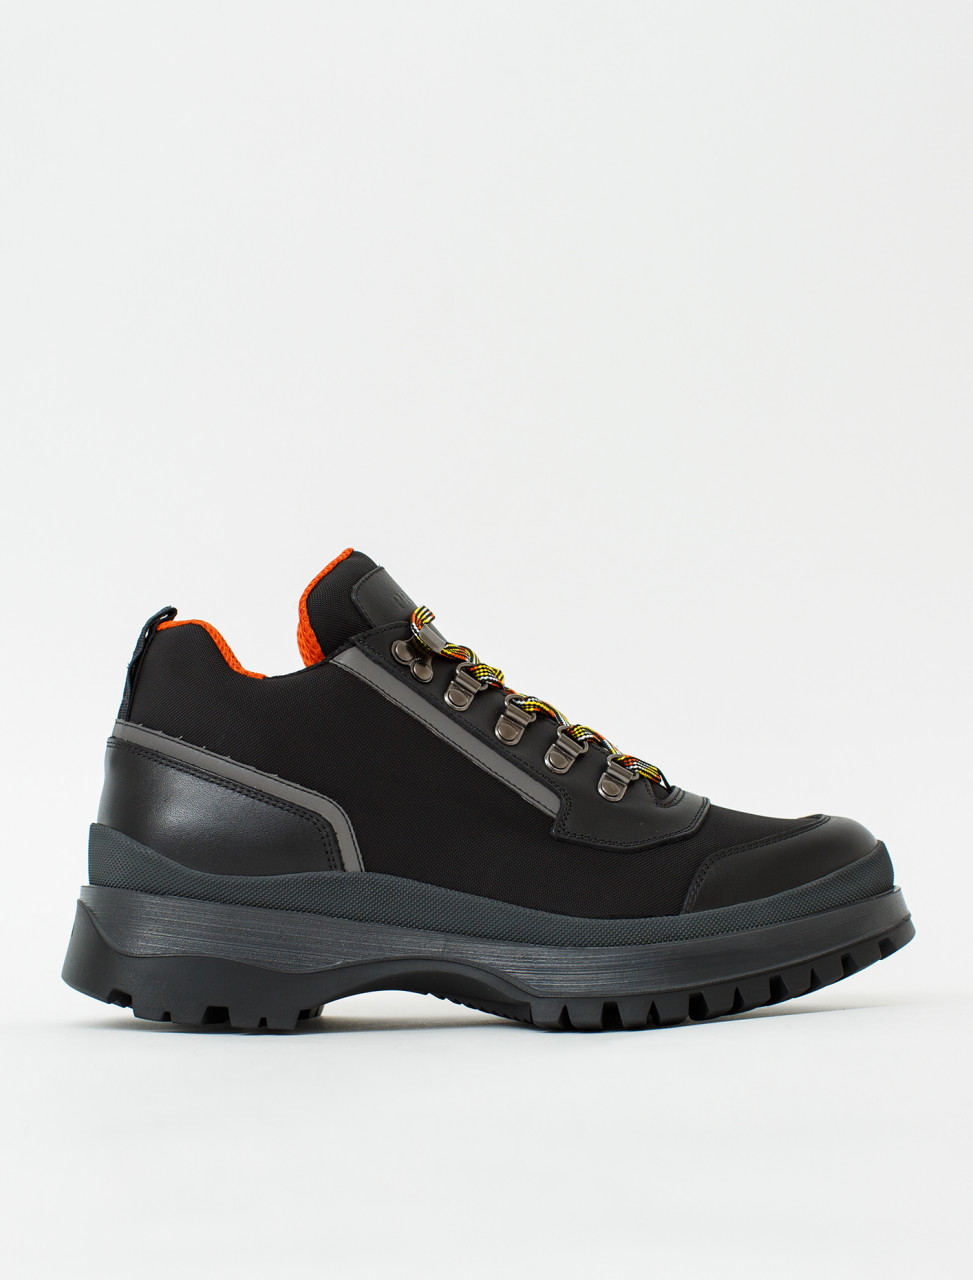 Prada Hiking Shoe